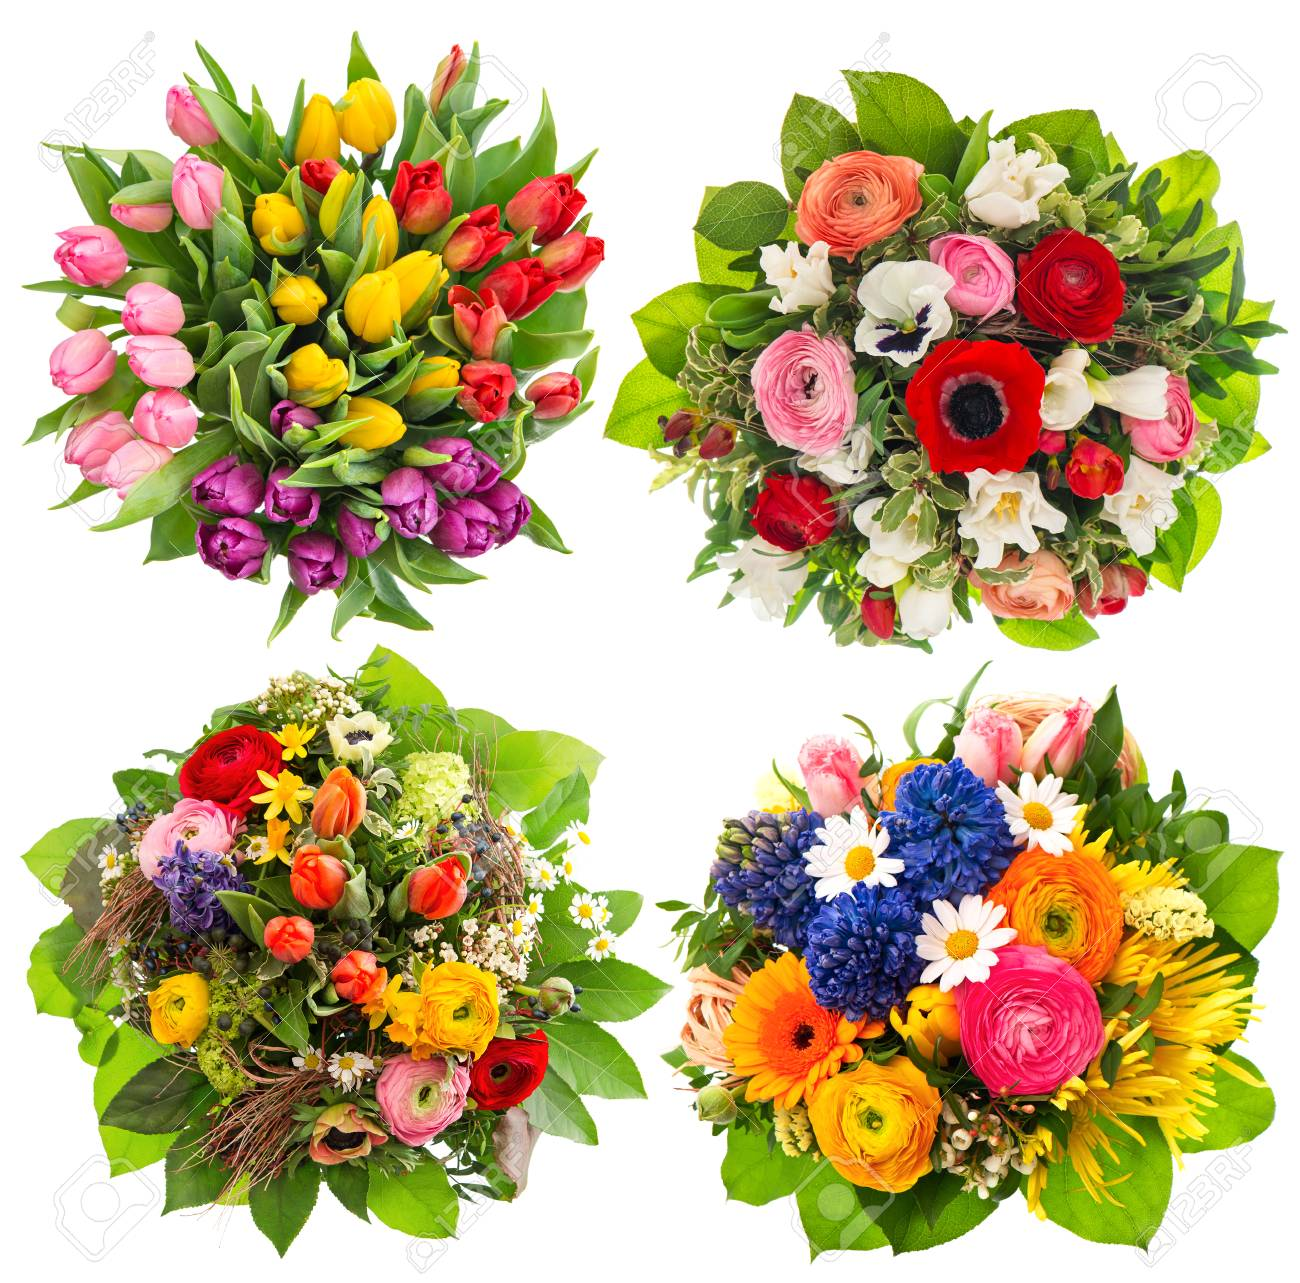 Colorful Flower Bouquets For Easter, Birthday, Wedding, Mothers ...